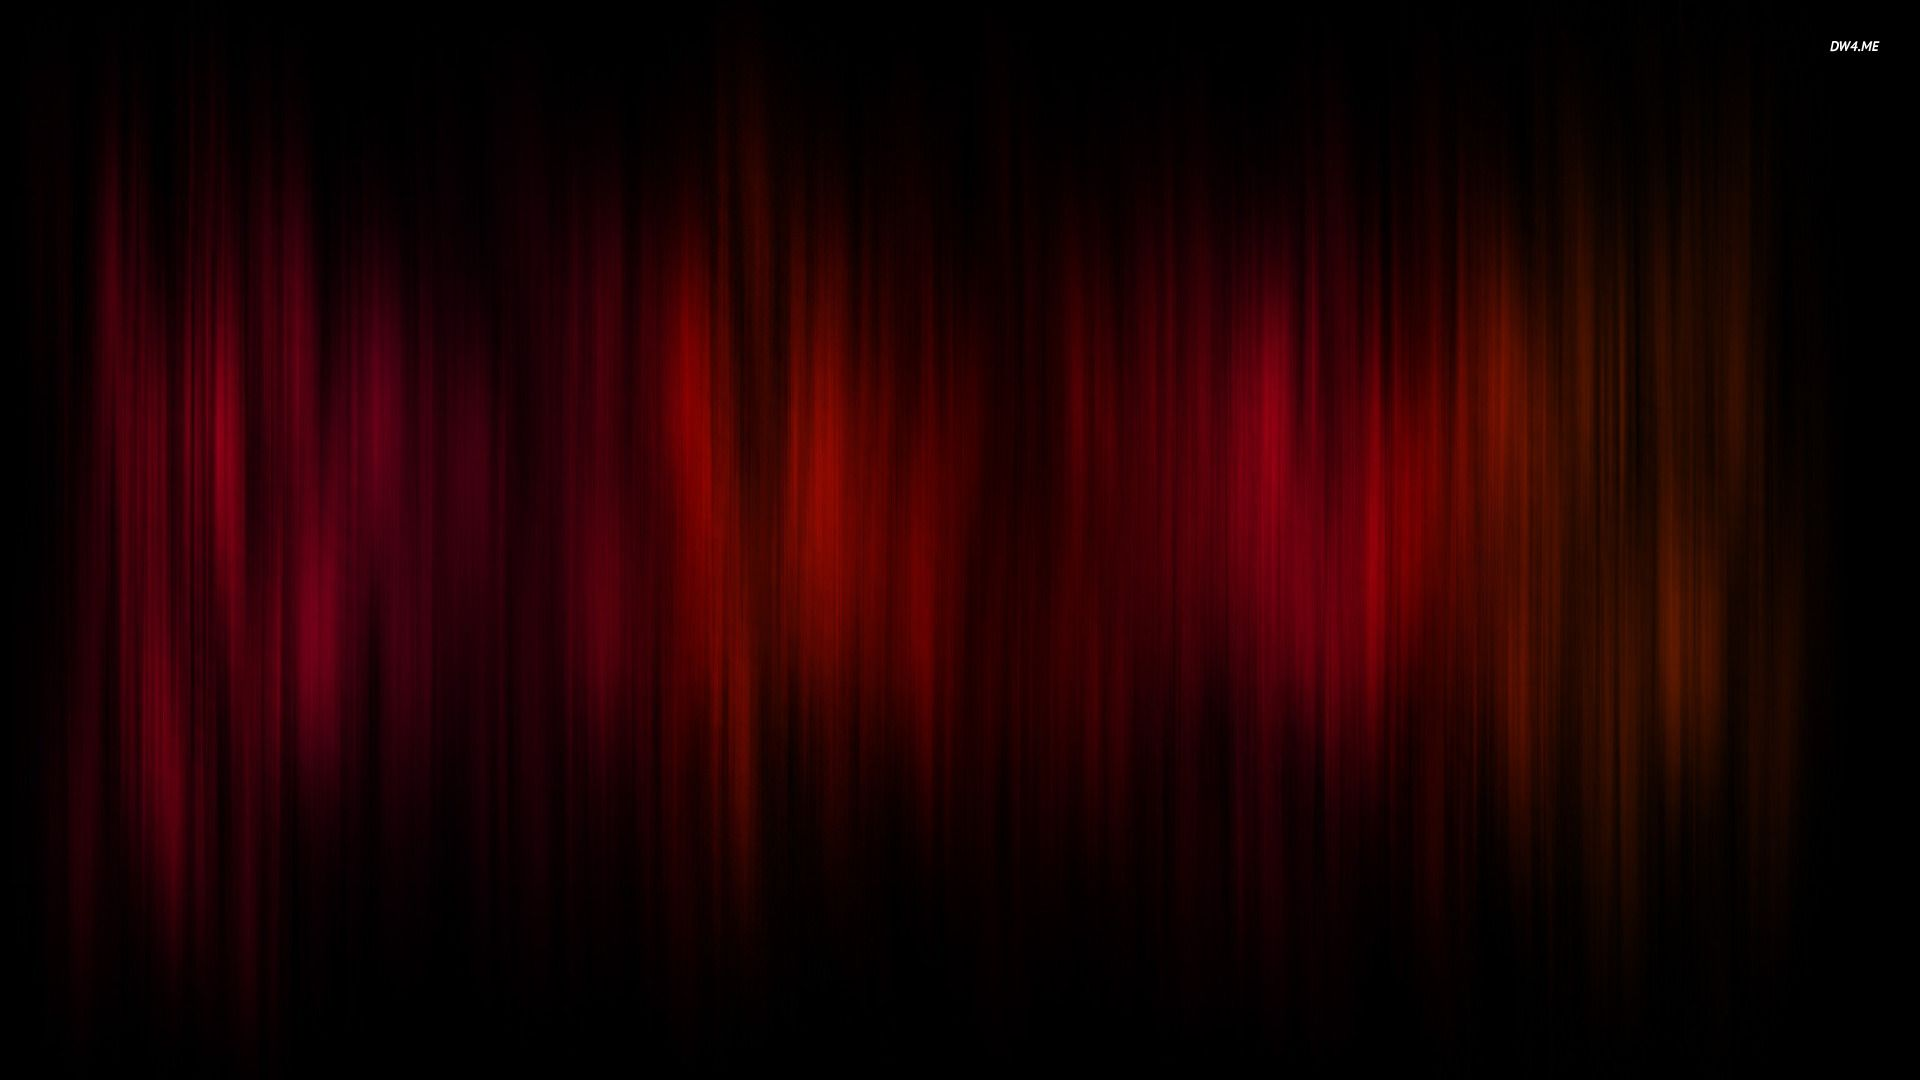 Collection Of Cool Red And Black Wallpapers On Hdwallpapers 1920